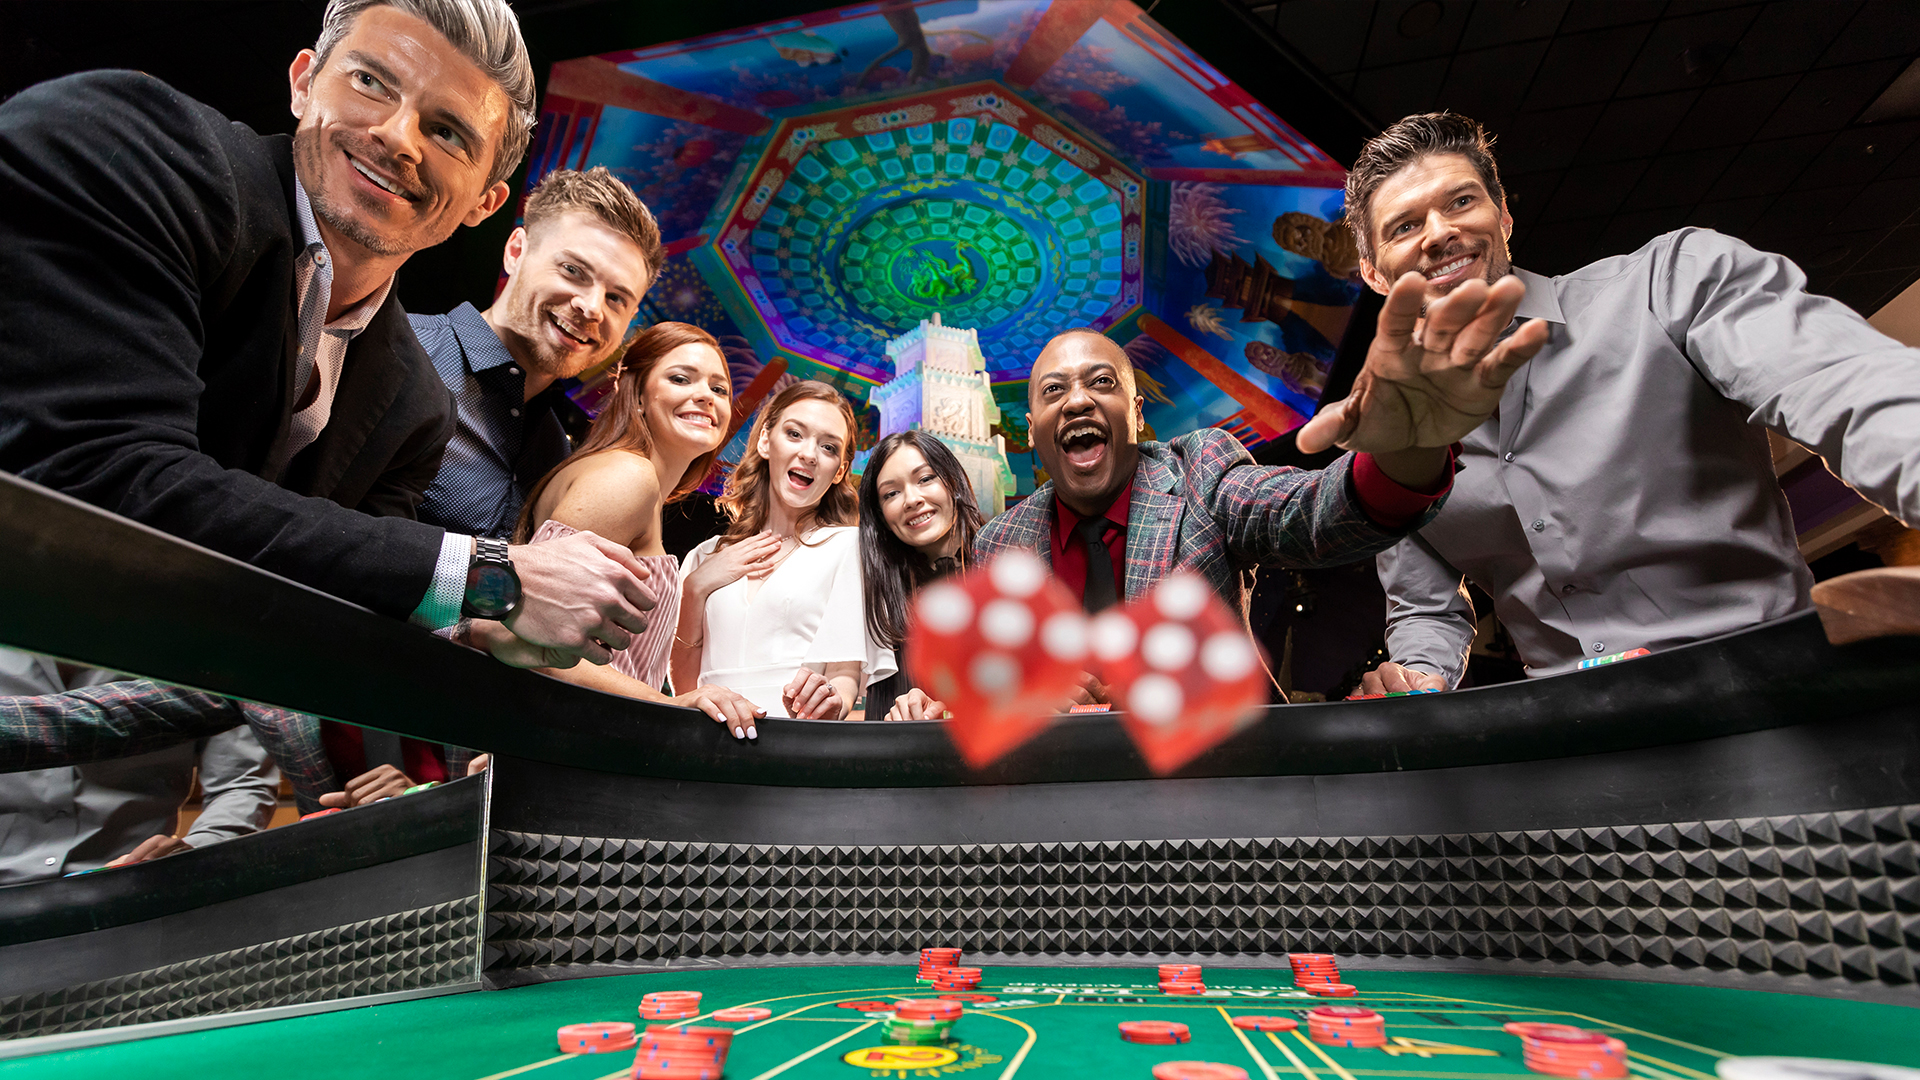 The Reduced Down On Gambling